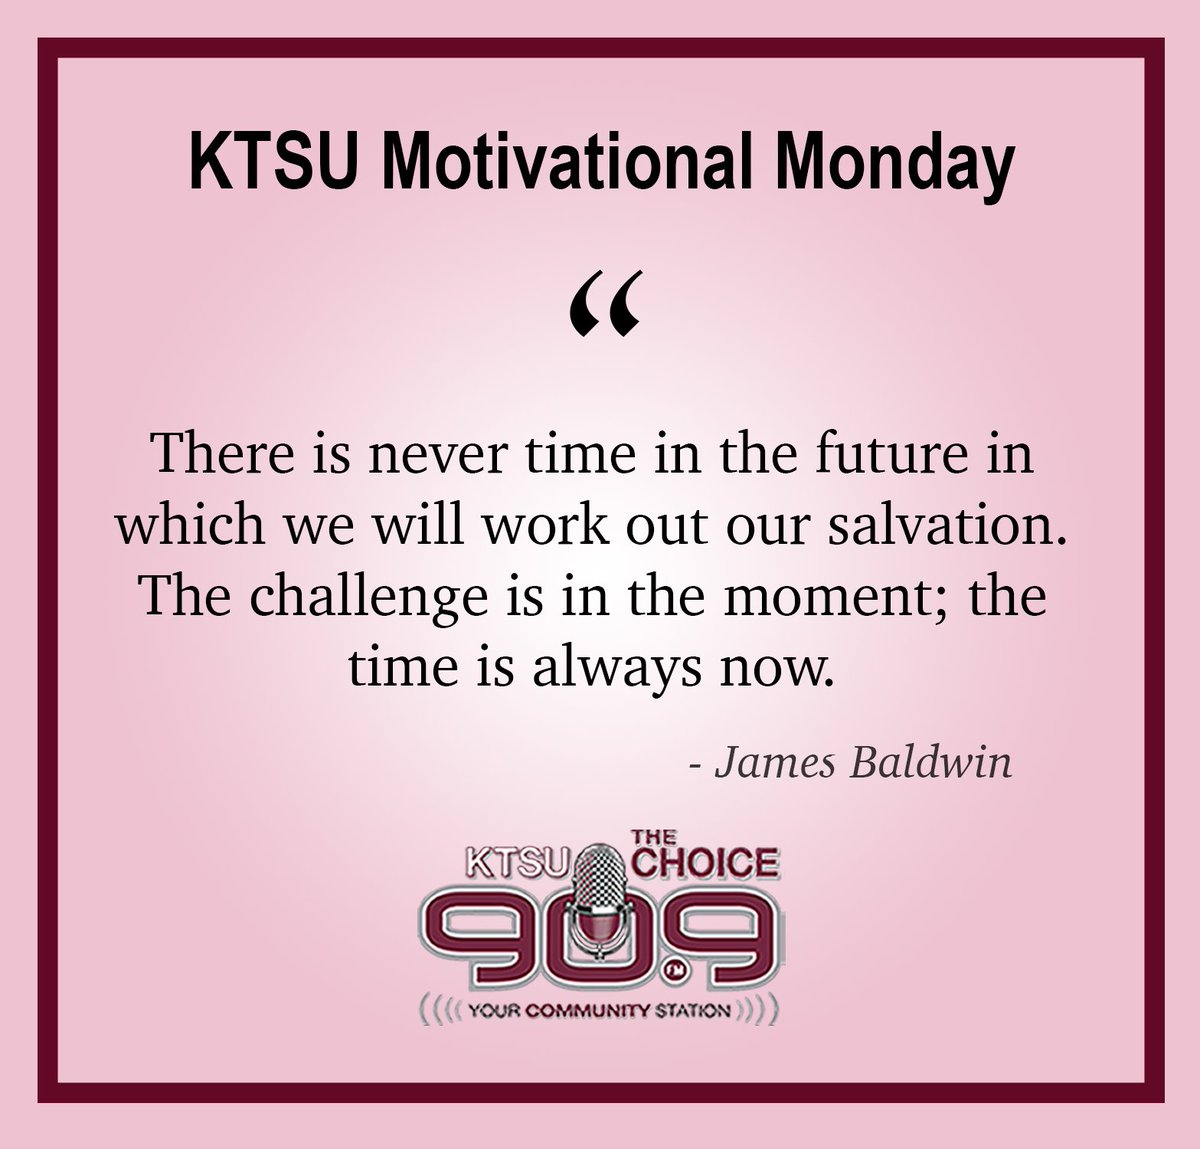 The challenge is in the moment and the time is NOW. 💪🏽 #KTSUmotivationmonday #MotivationMonday #motivation #motivate #motivational #jamesbaldwin #quotes #success #KTSUradio #inspiration #inspire #KTSUMember #KTSU909 https://t.co/MhHVnt39Gh